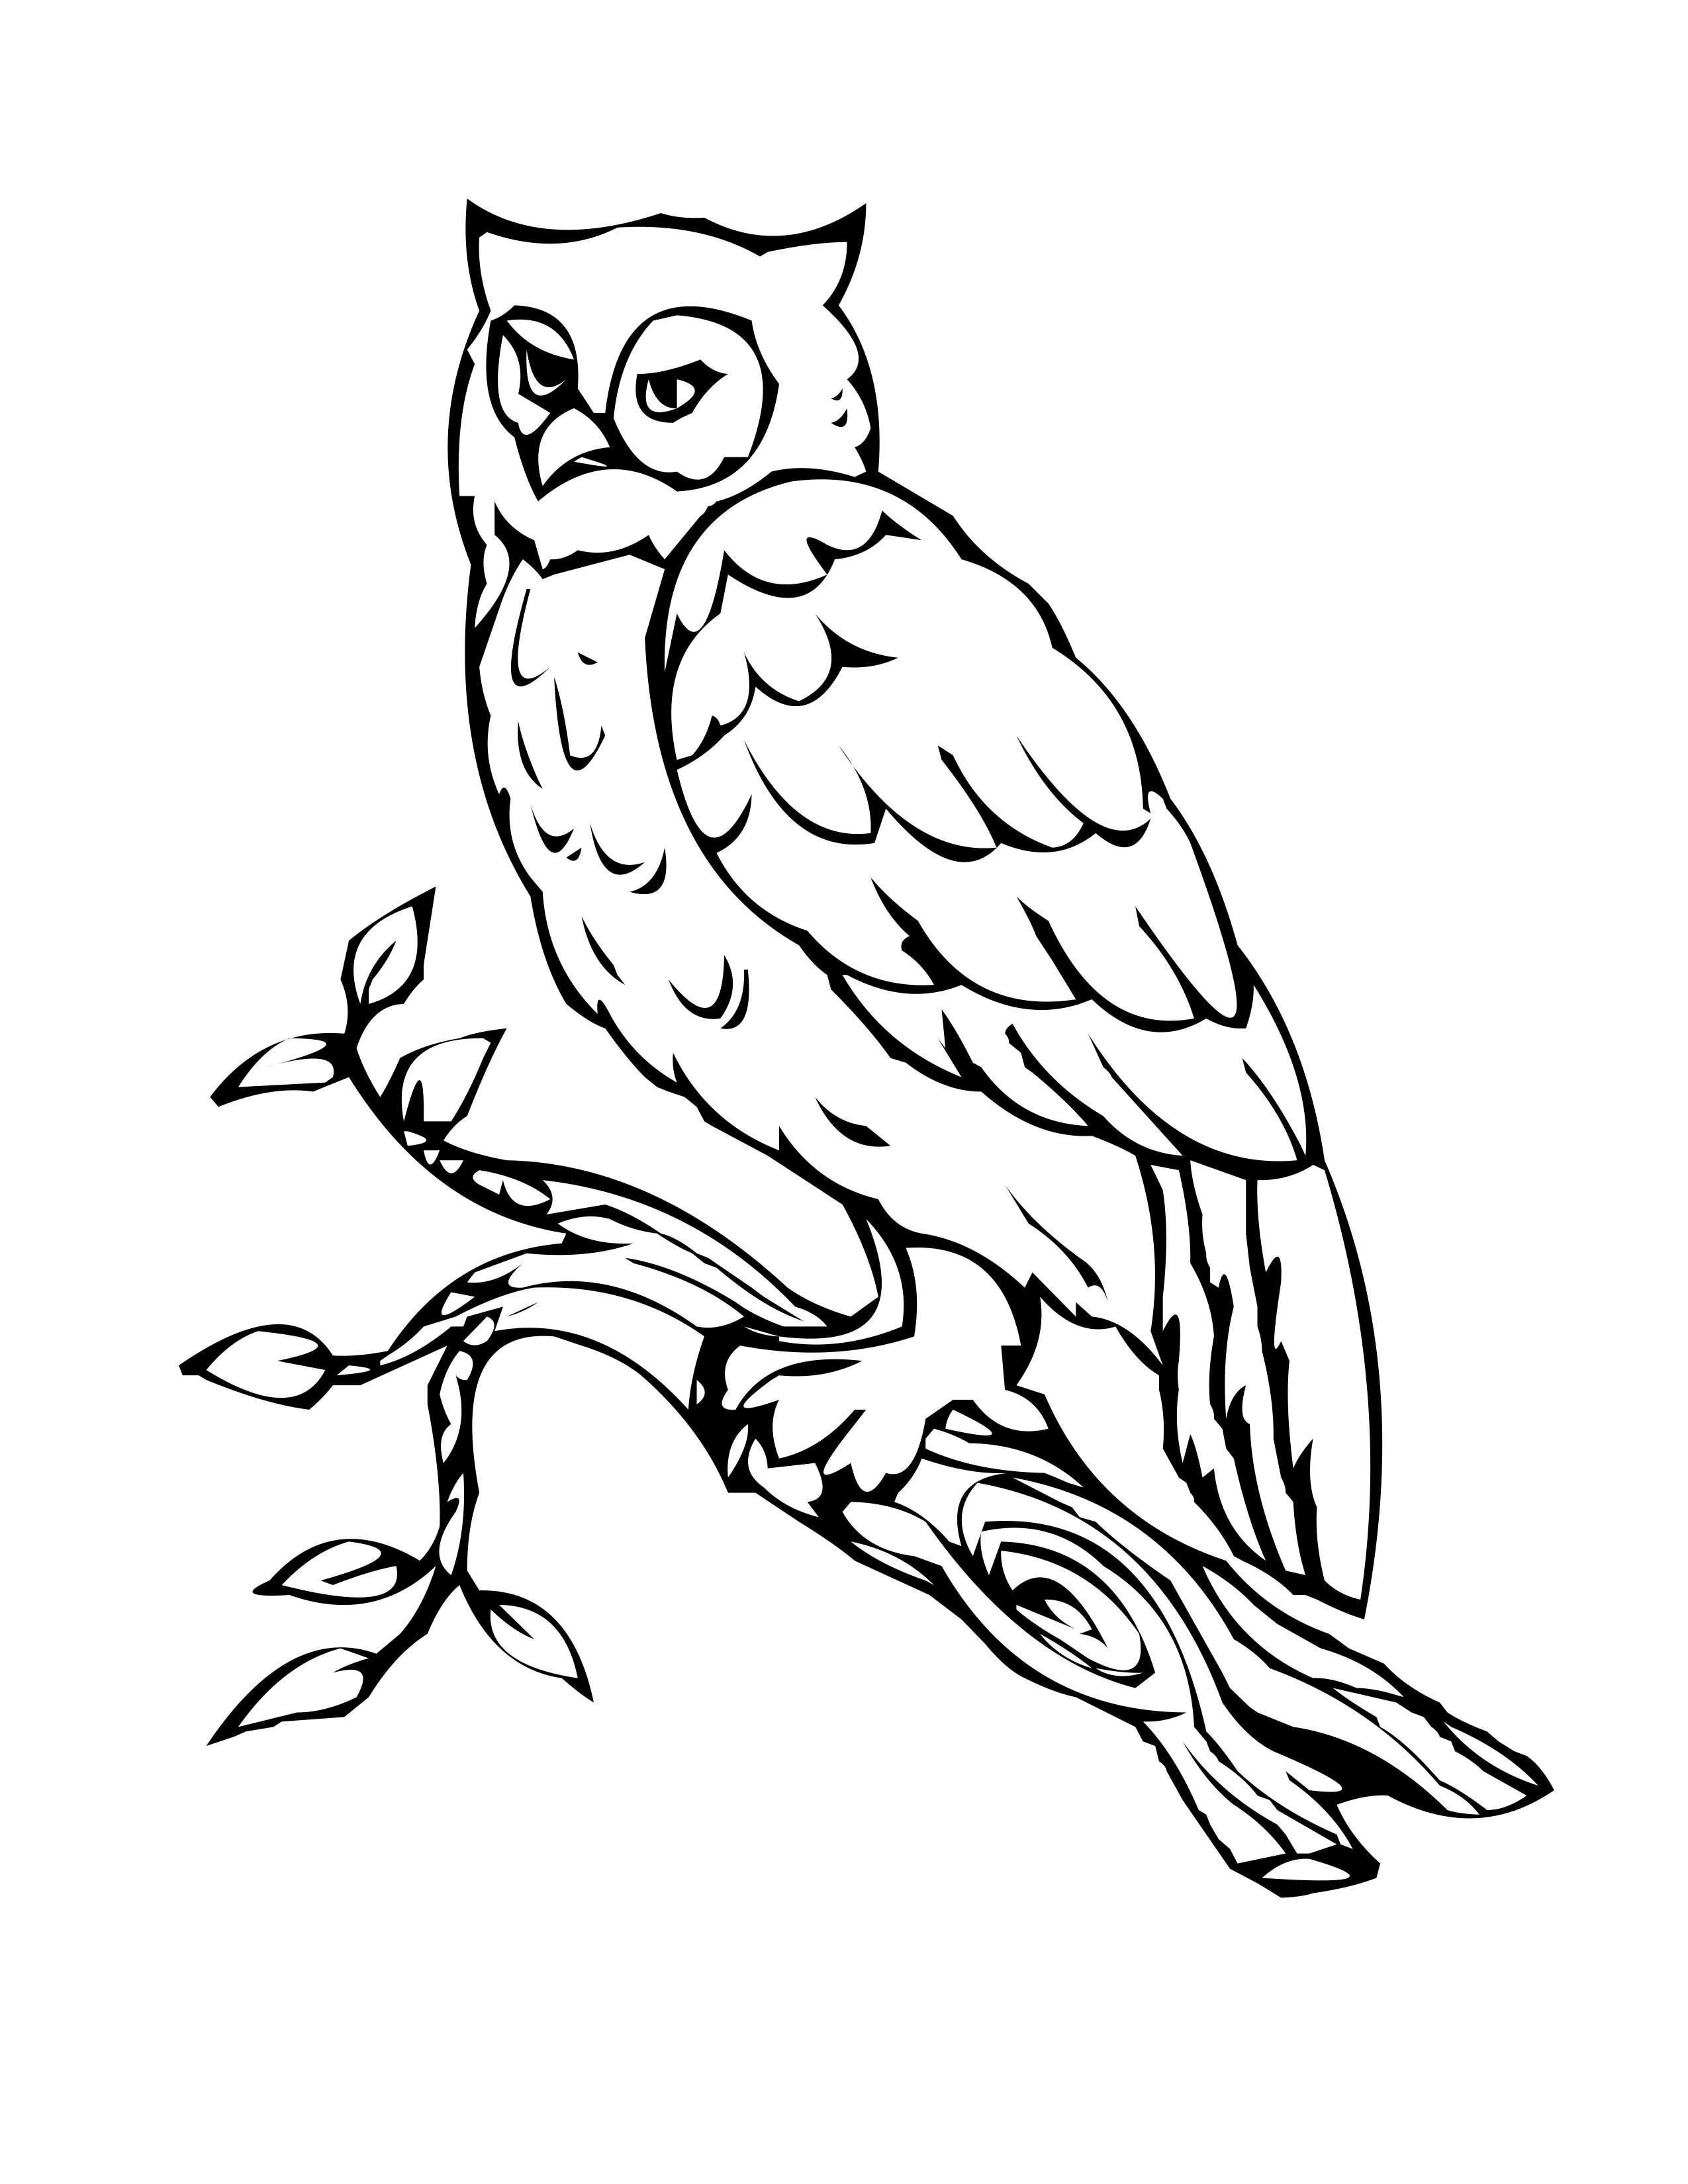 bird colouring pages for kids birds to color for children birds kids coloring pages pages colouring bird for kids